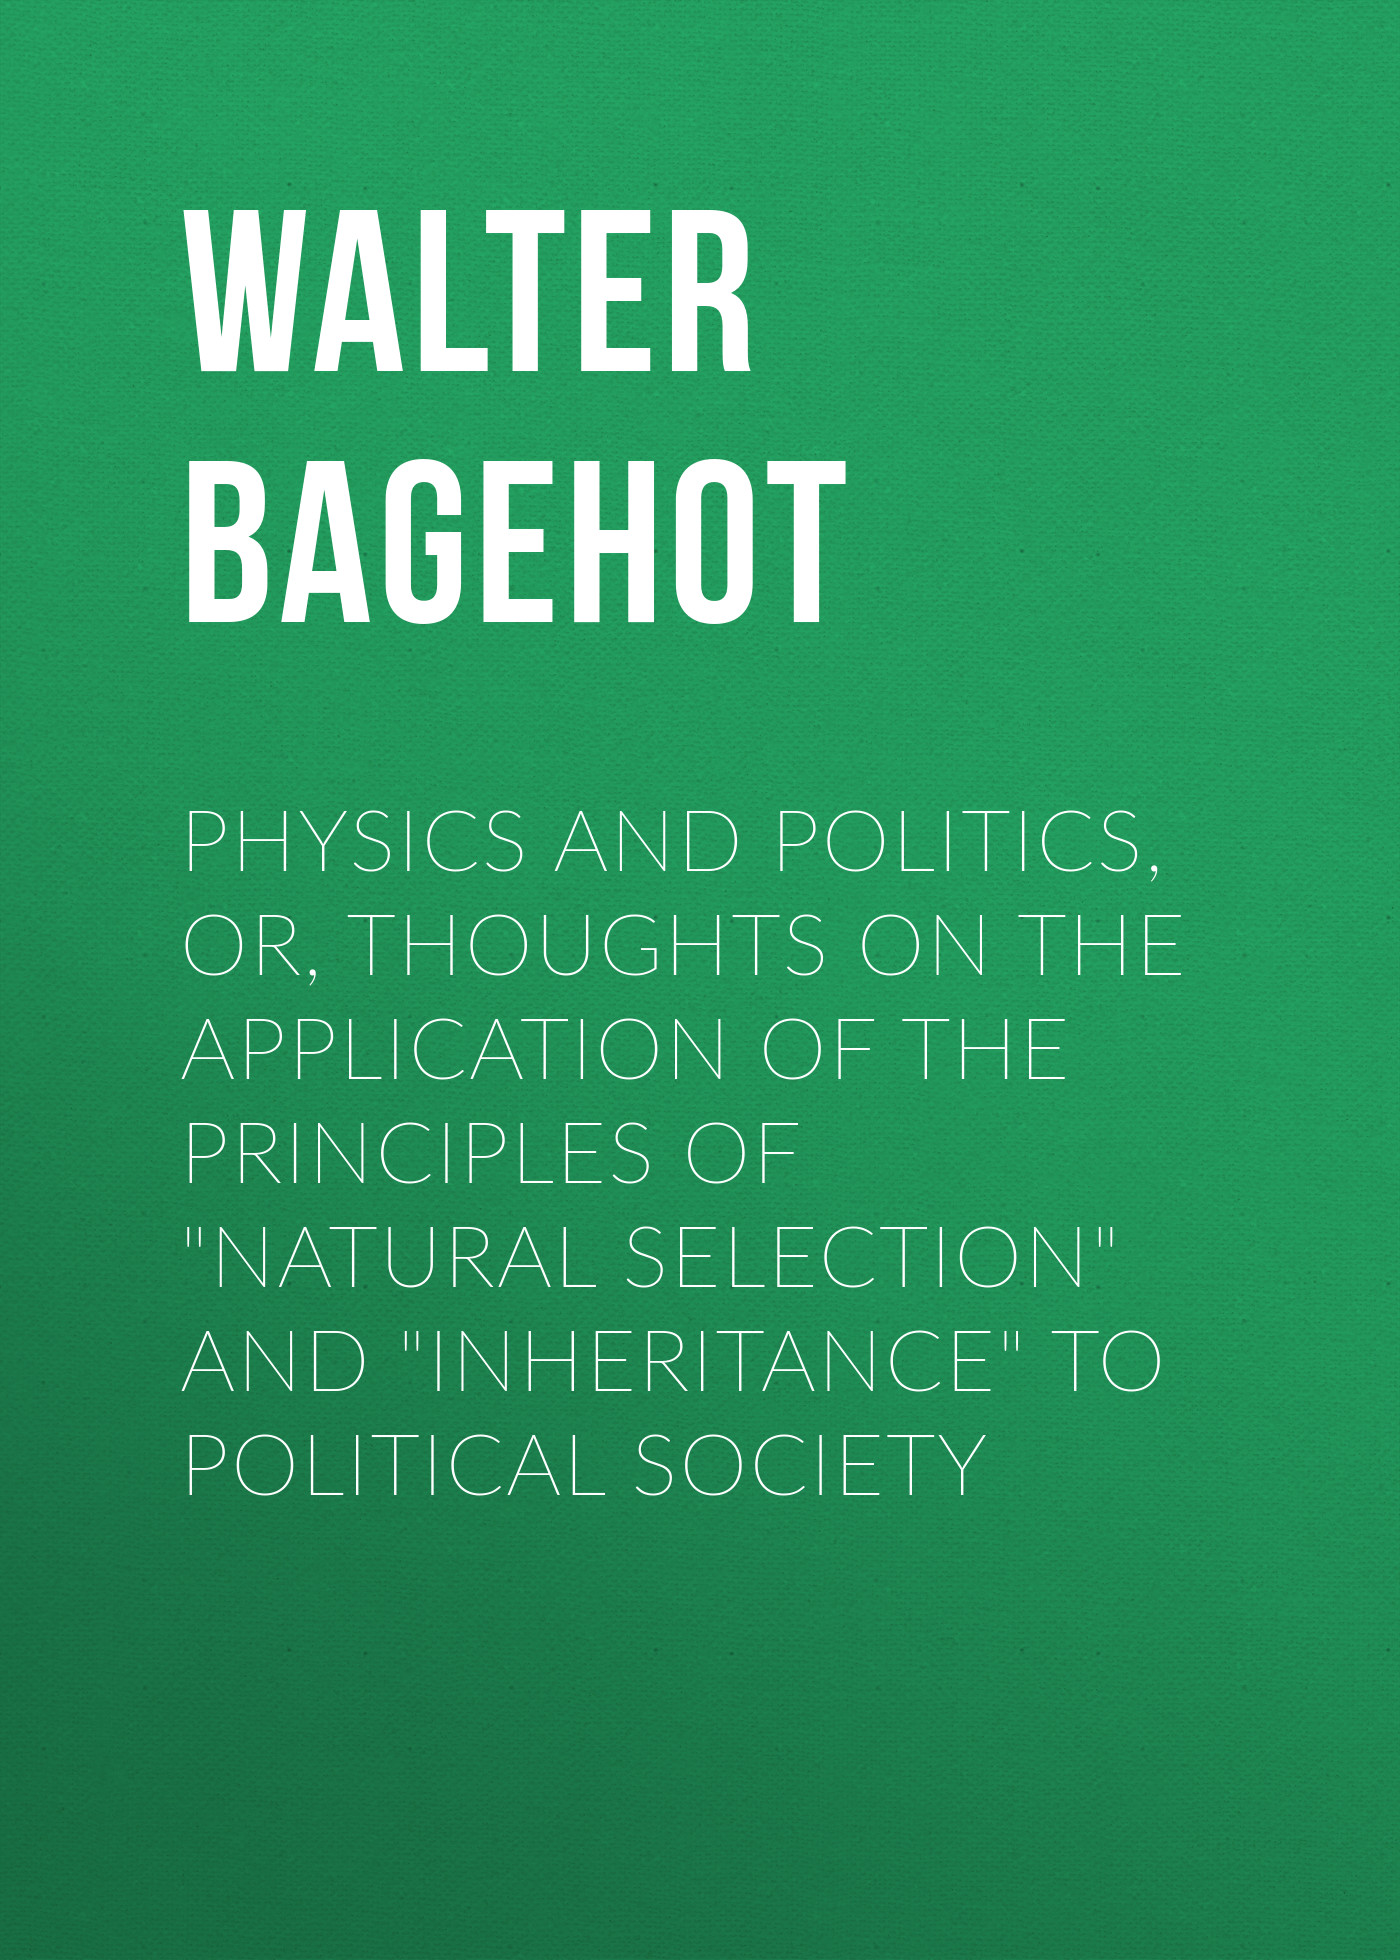 Walter Bagehot Physics and Politics, or, Thoughts on the application of the principles of